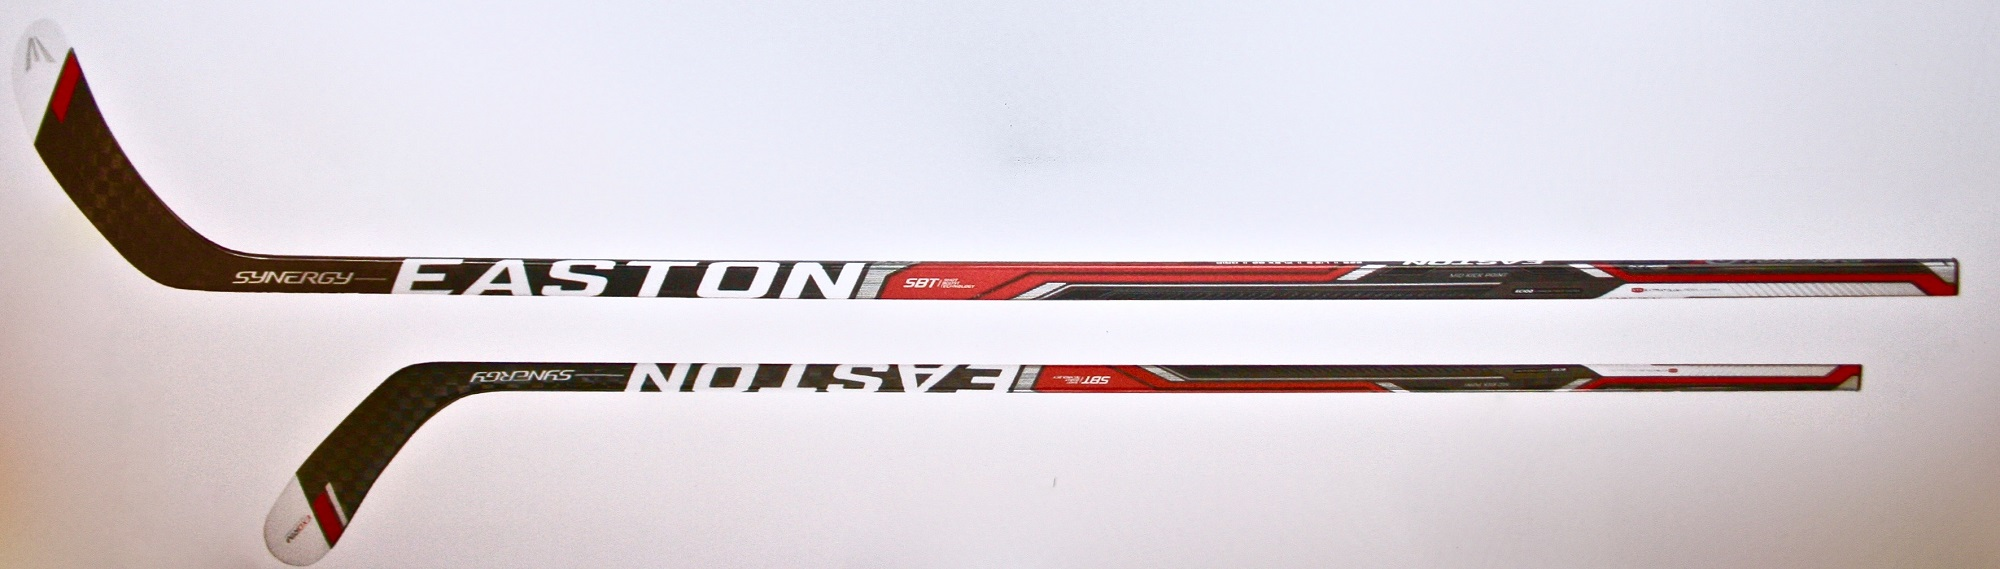 Easton hockey sticks 2013